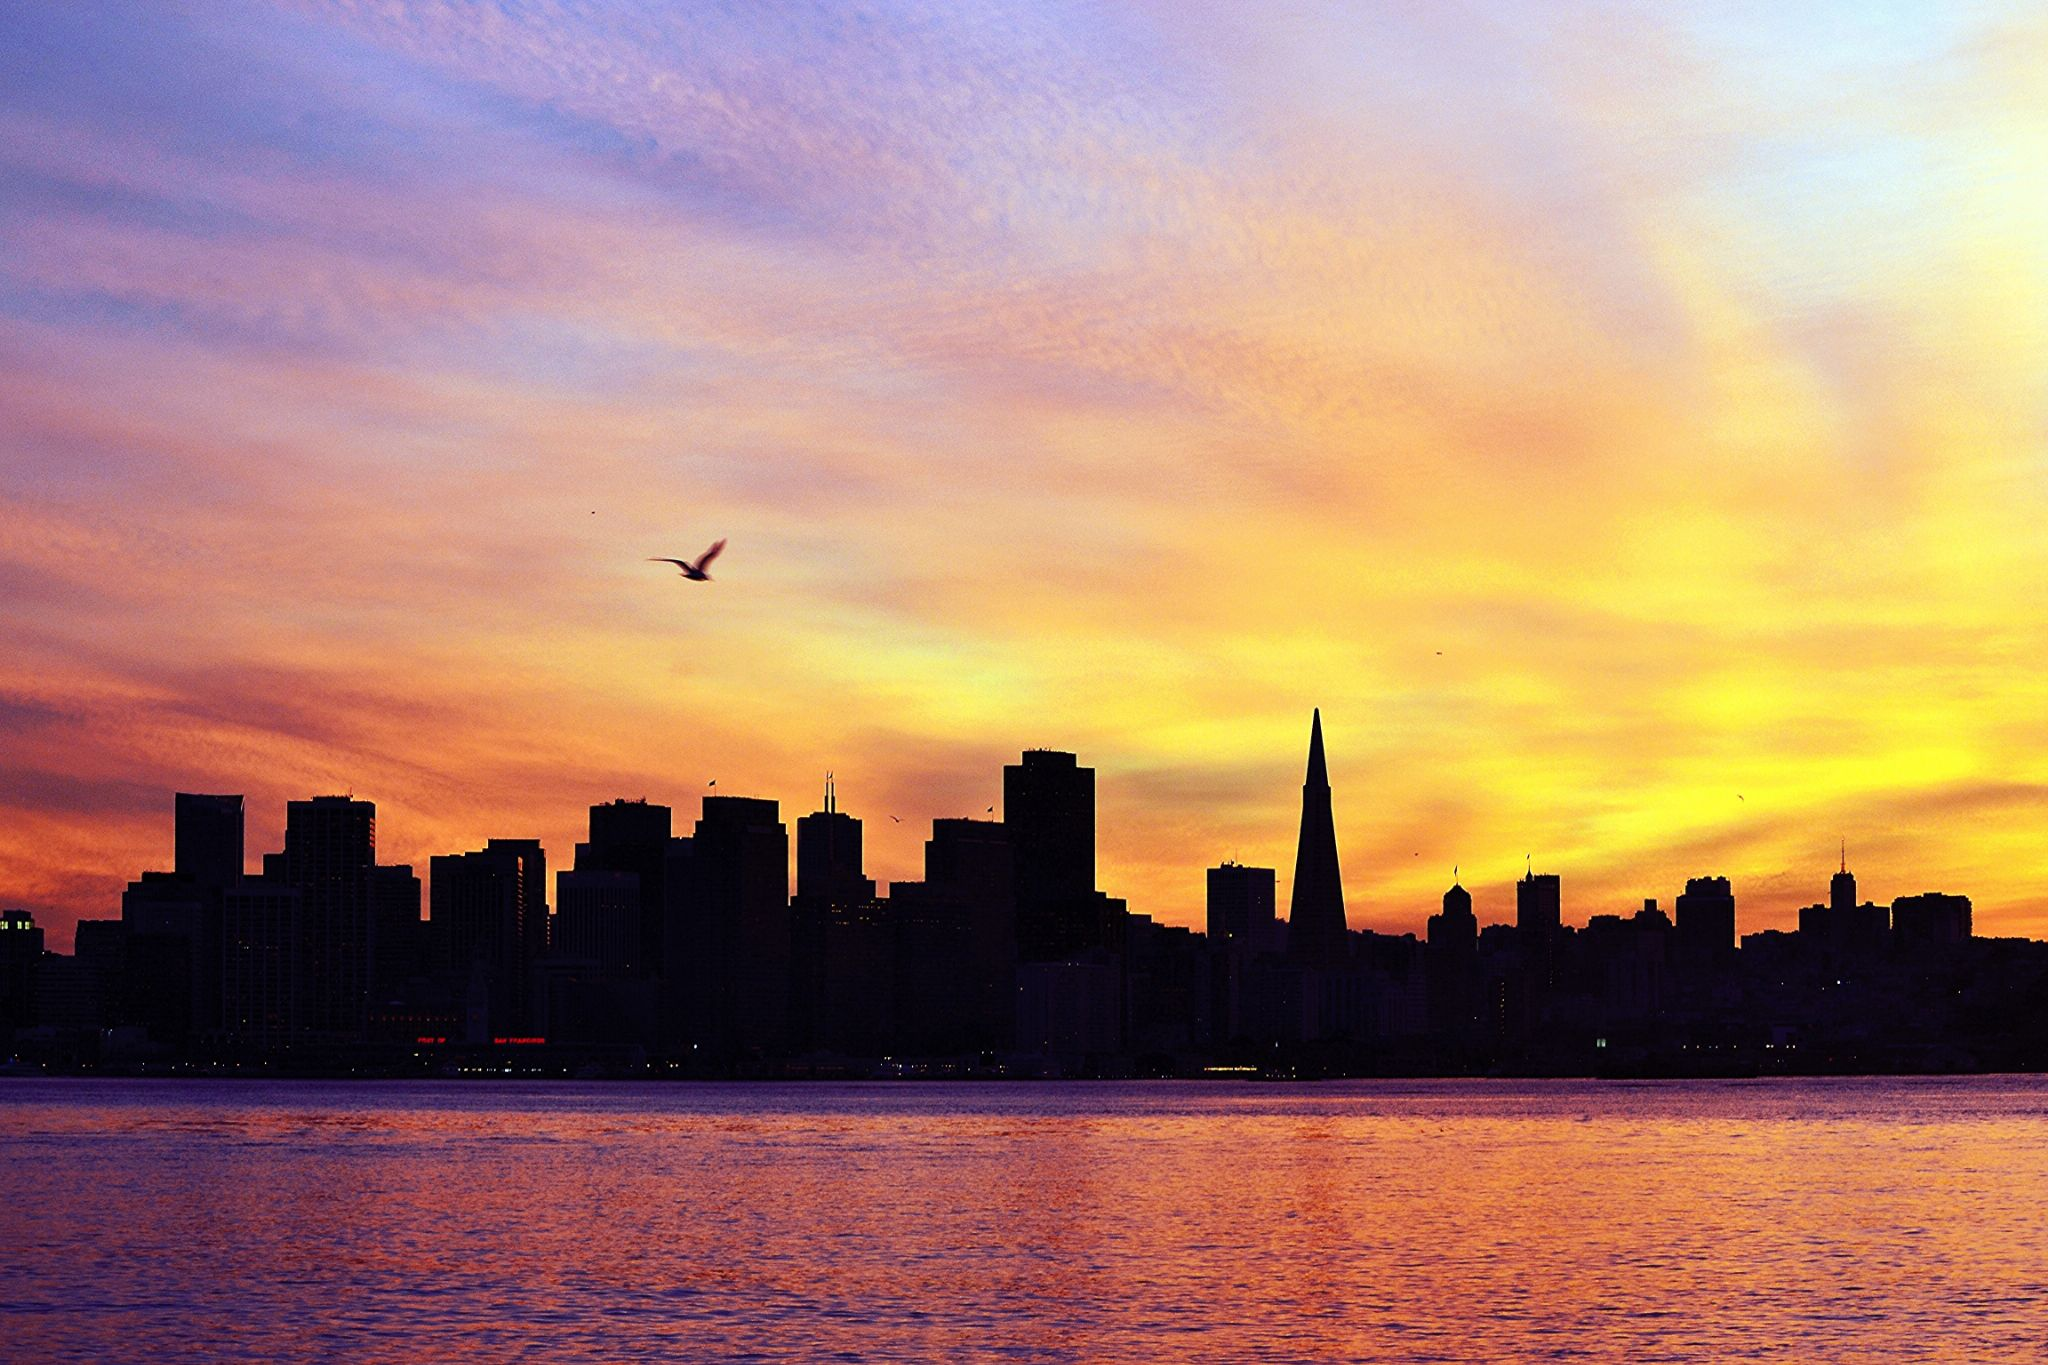 San Francisco at Sunset by Frederico Domondon